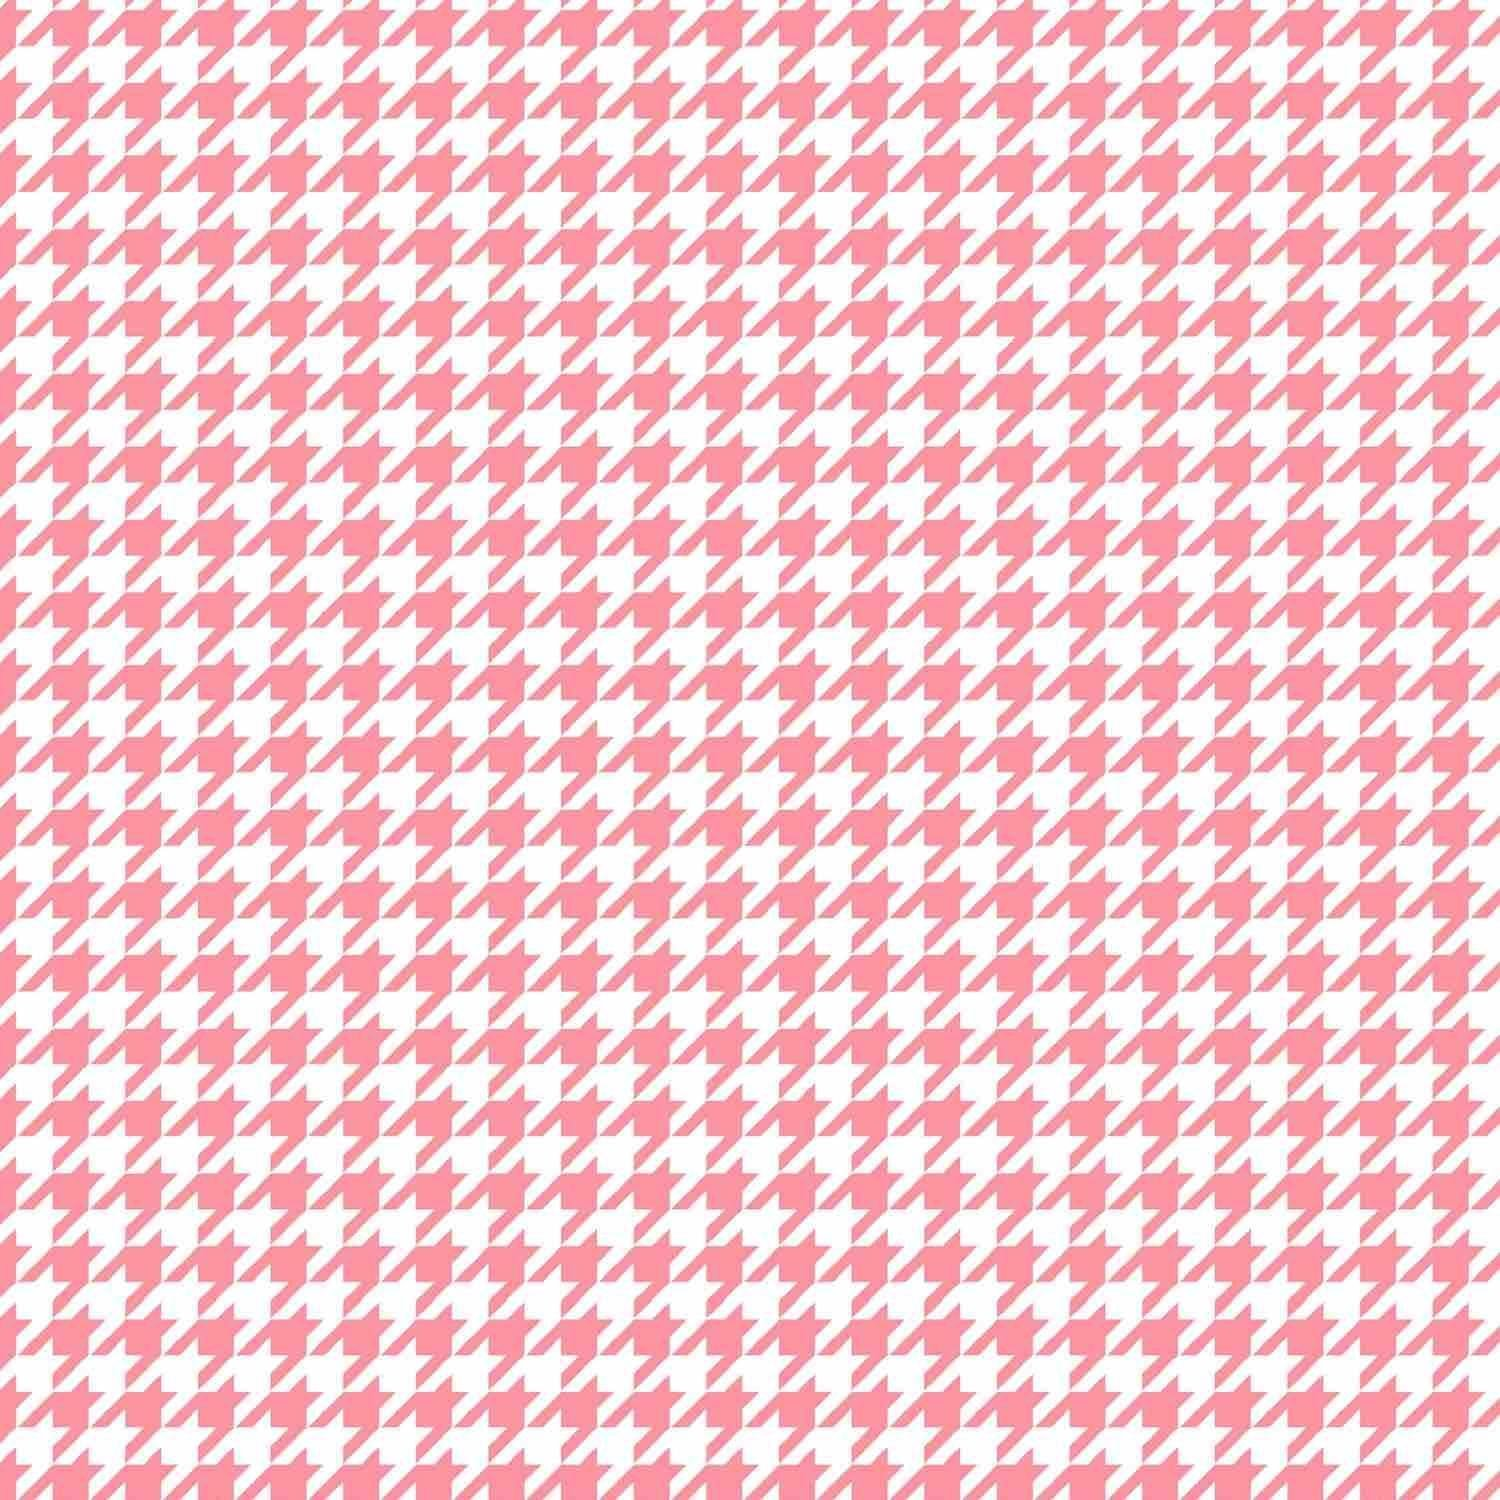 Lil' Sprout Flannel Too Houndstooth White/Pink F8225WP